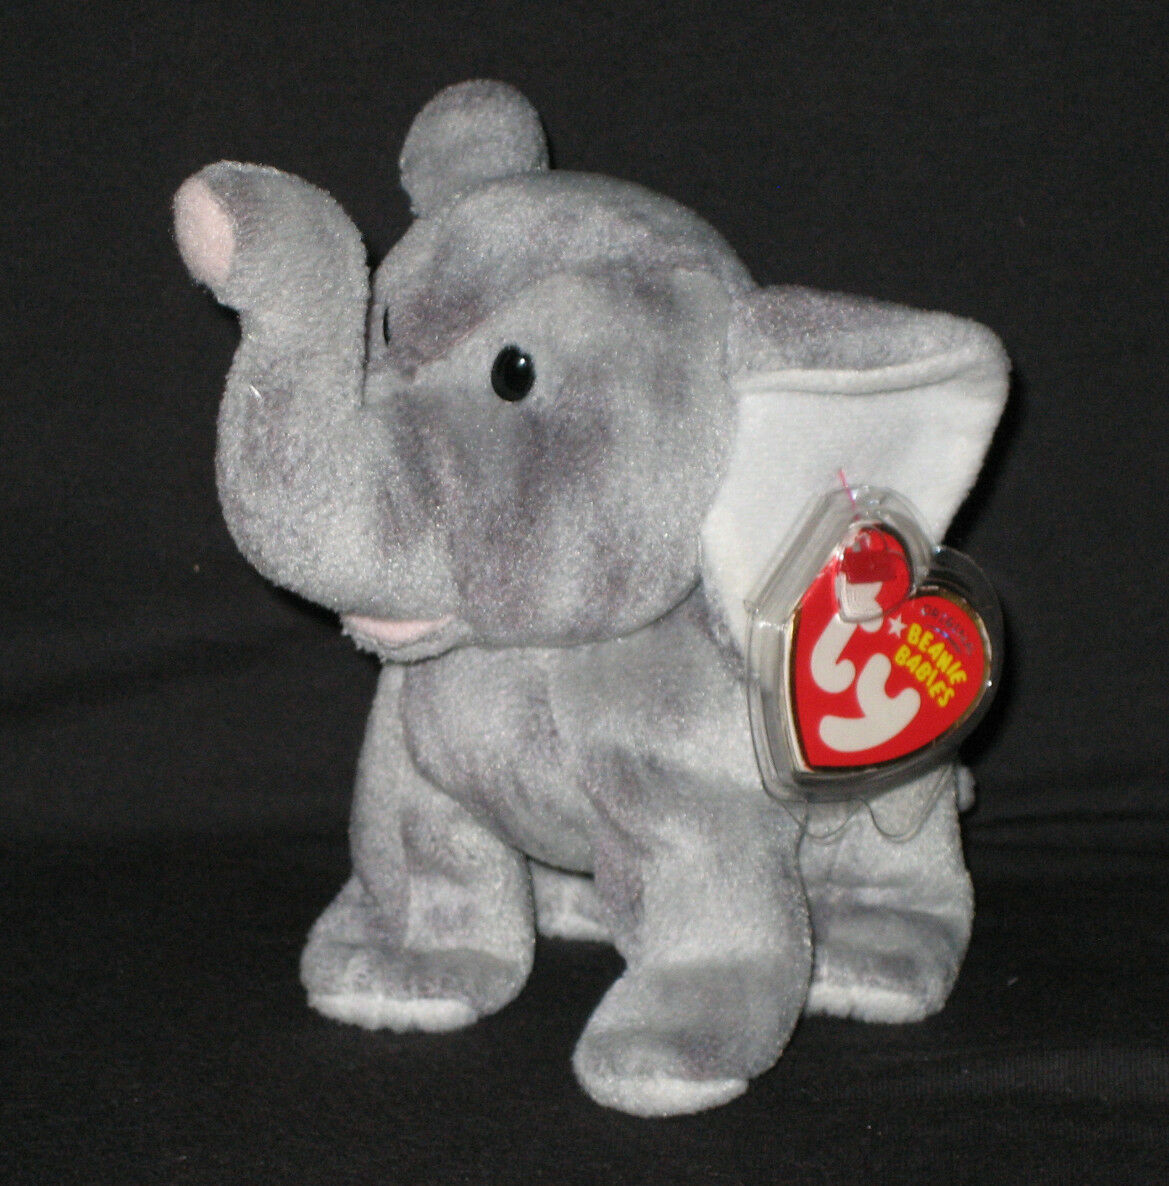 TY MAHILA   JADE the ELEPHANT BEANIE BABY - ST. LOUIS ZOO EXCLUSIVE - MINT TAG